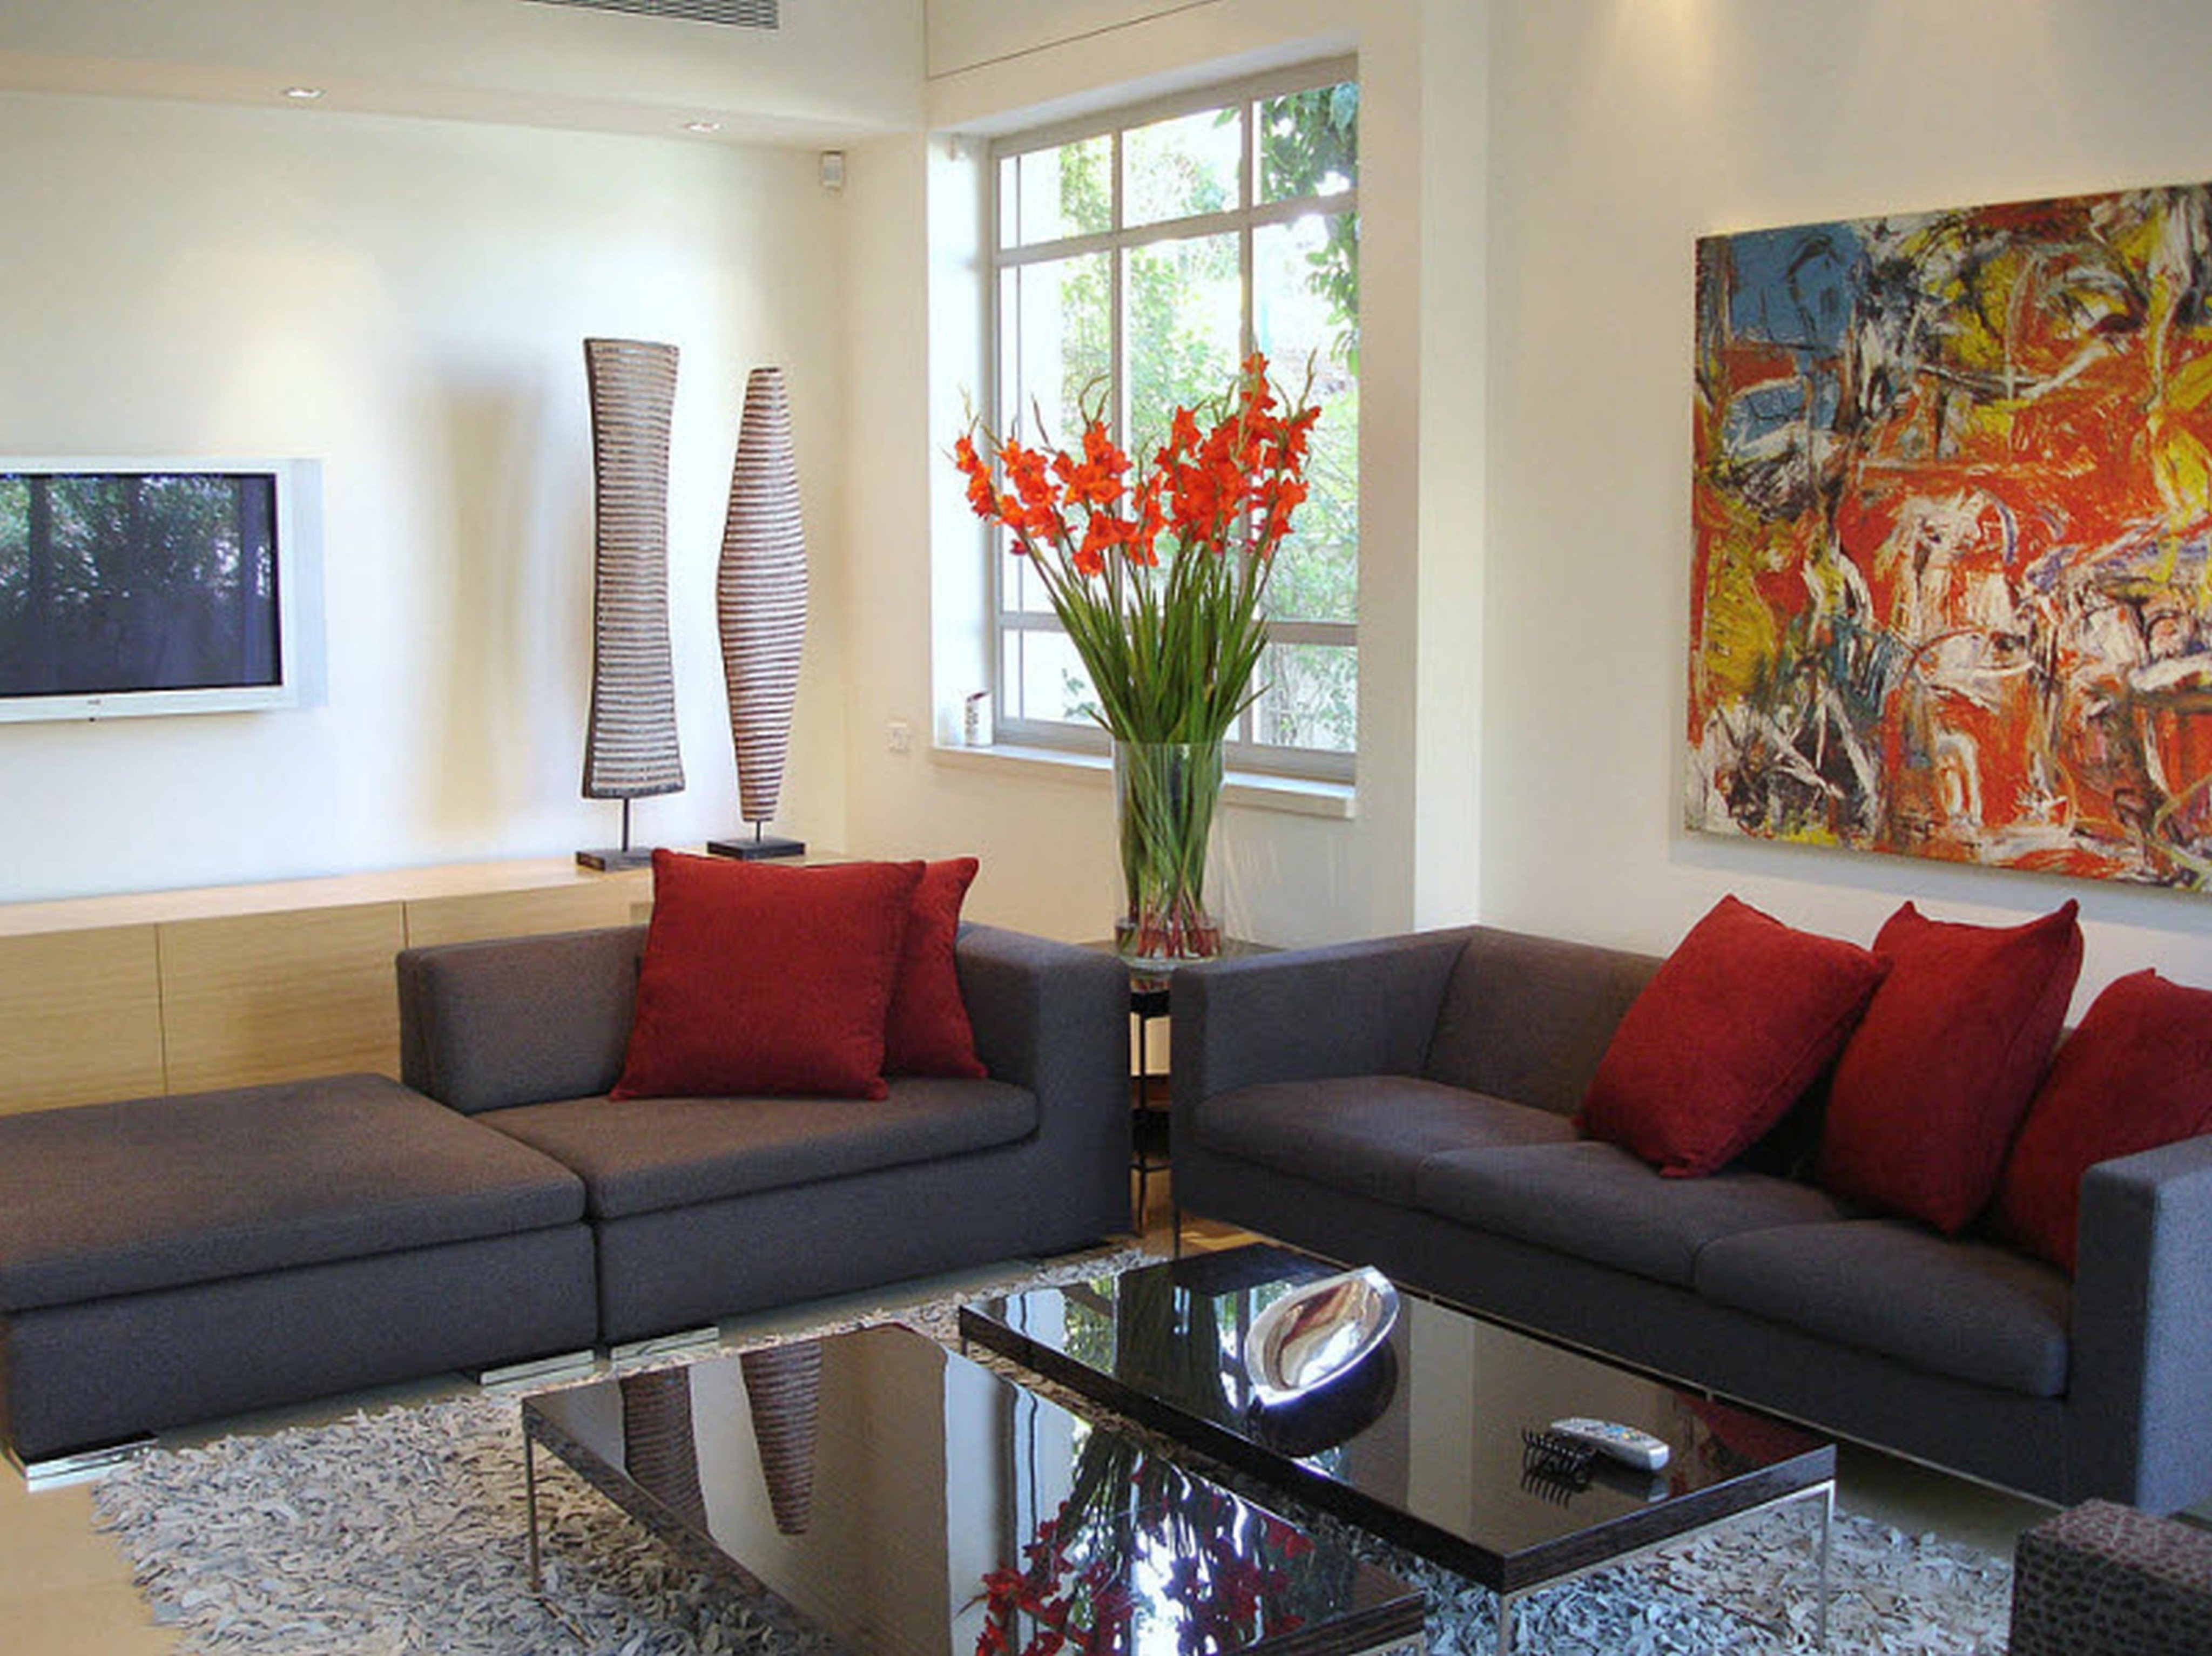 10 Stylish House Decorating Ideas On A Budget decorating your design a house with perfect beautifull small living 3 2021